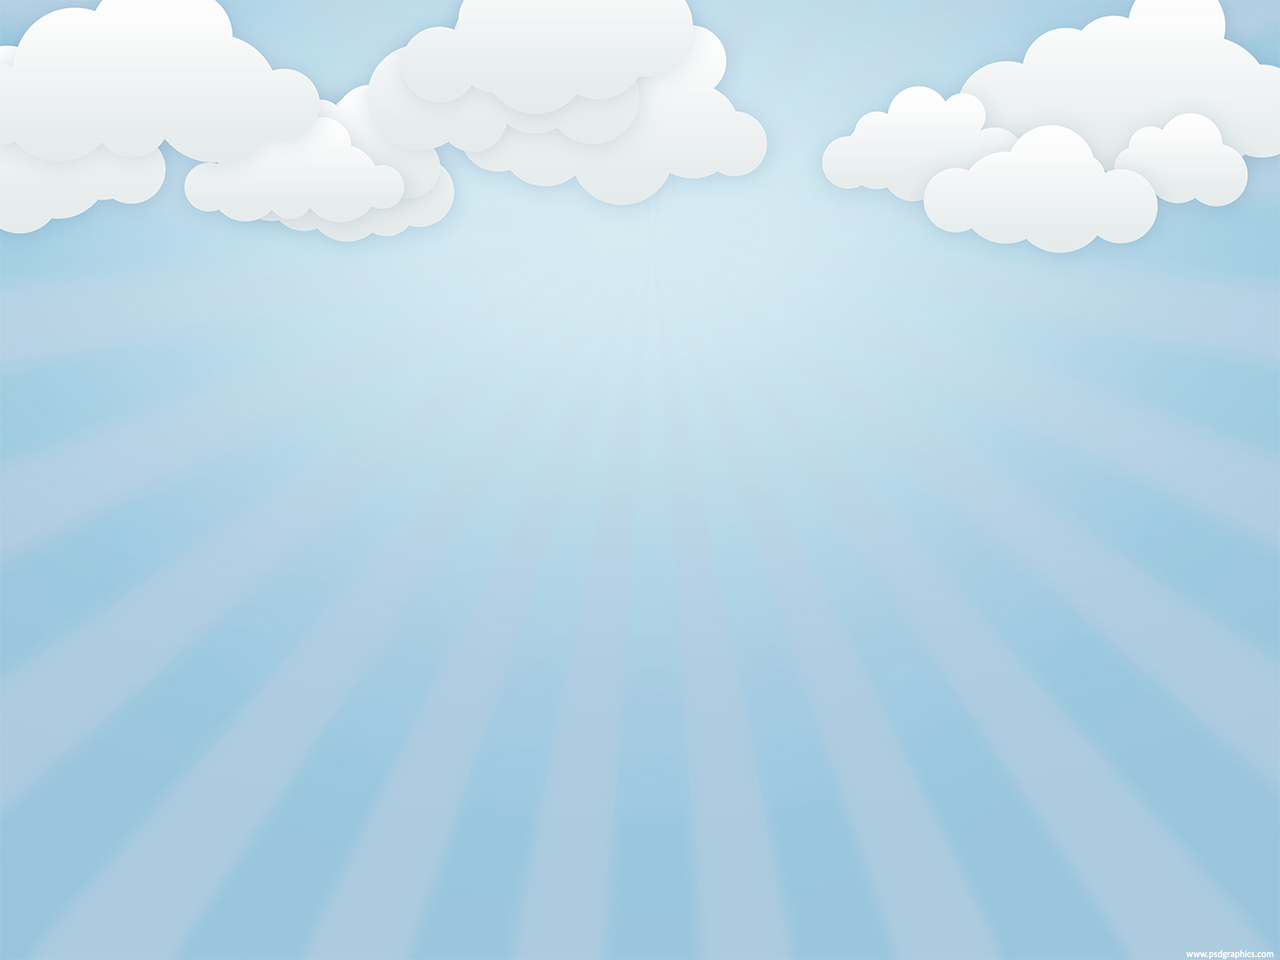 cloudy sky cartoon background psdgraphics rh psdgraphics com cartoon sky background free cartoon sky background vector